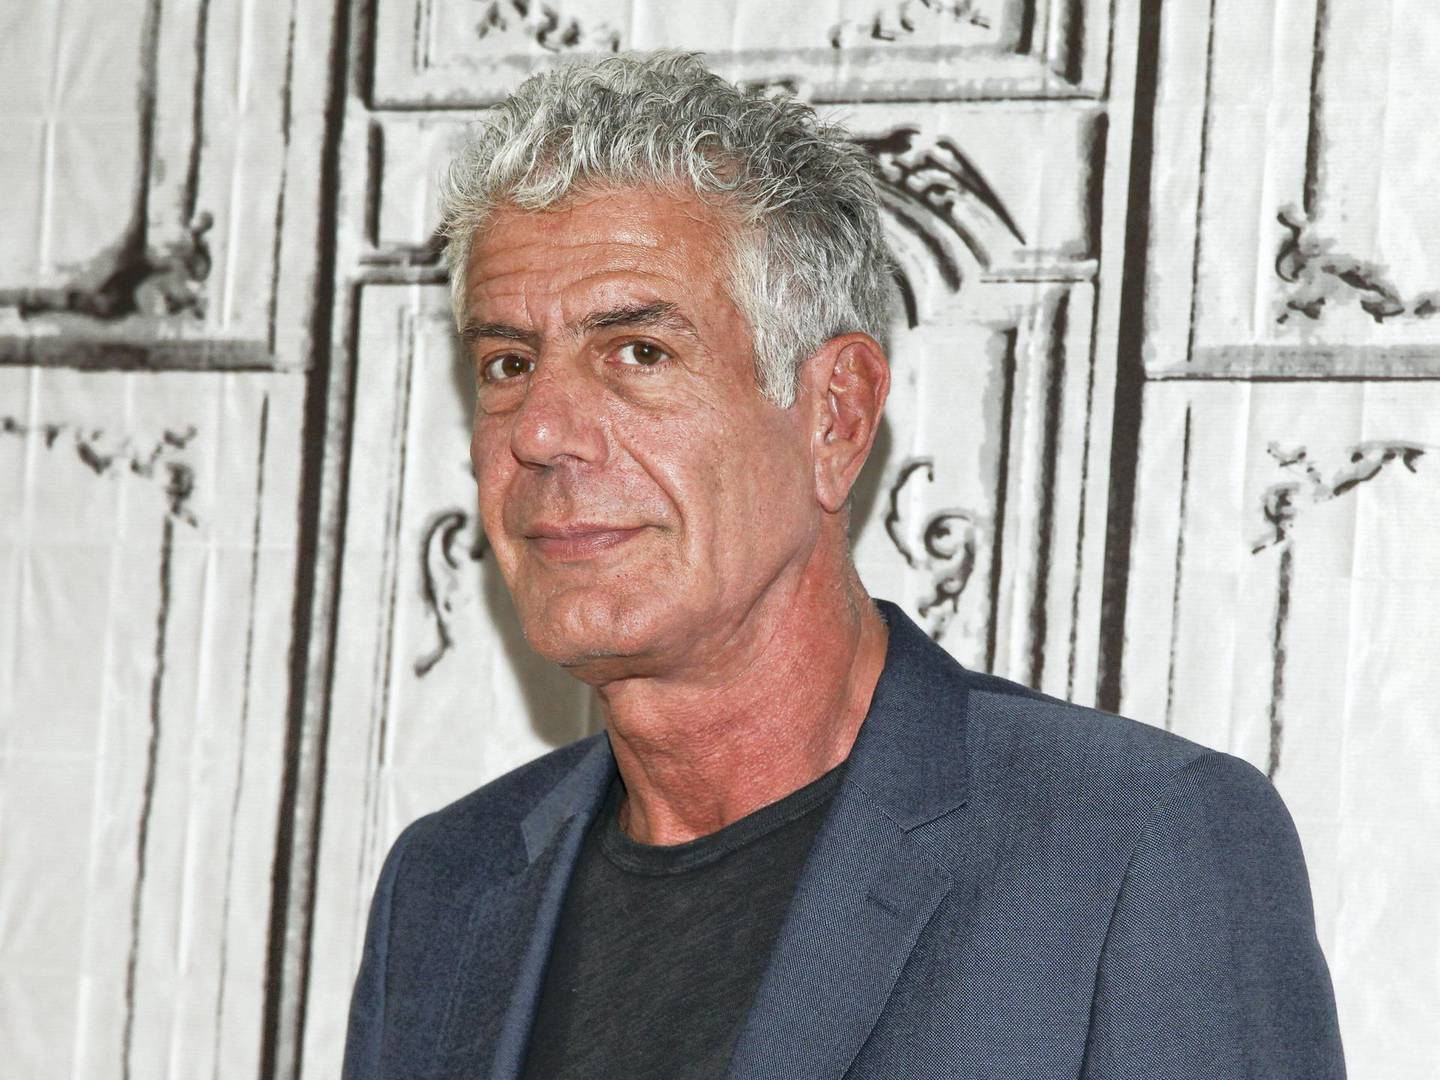 """FILE - In this Nov. 2, 2016, file photo, Anthony Bourdain participates in the BUILD Speaker Series to discuss the online film series """"Raw Craft"""" at AOL Studios in New York. New Jersey might honor celebrity chef Bourdain, writer and host of the CNN series """"Parts Unknown"""" killed himself Friday, June 8, 2018, with a food trail. Democratic Assemblyman Paul Moriarty on Monday, June 18, 2018, introduced a resolution that would establish the """"Anthony Bourdain Food Trail."""" Bourdain grew up in the New Jersey suburb of Leonia. (Photo by Andy Kropa/Invision/AP, File)"""